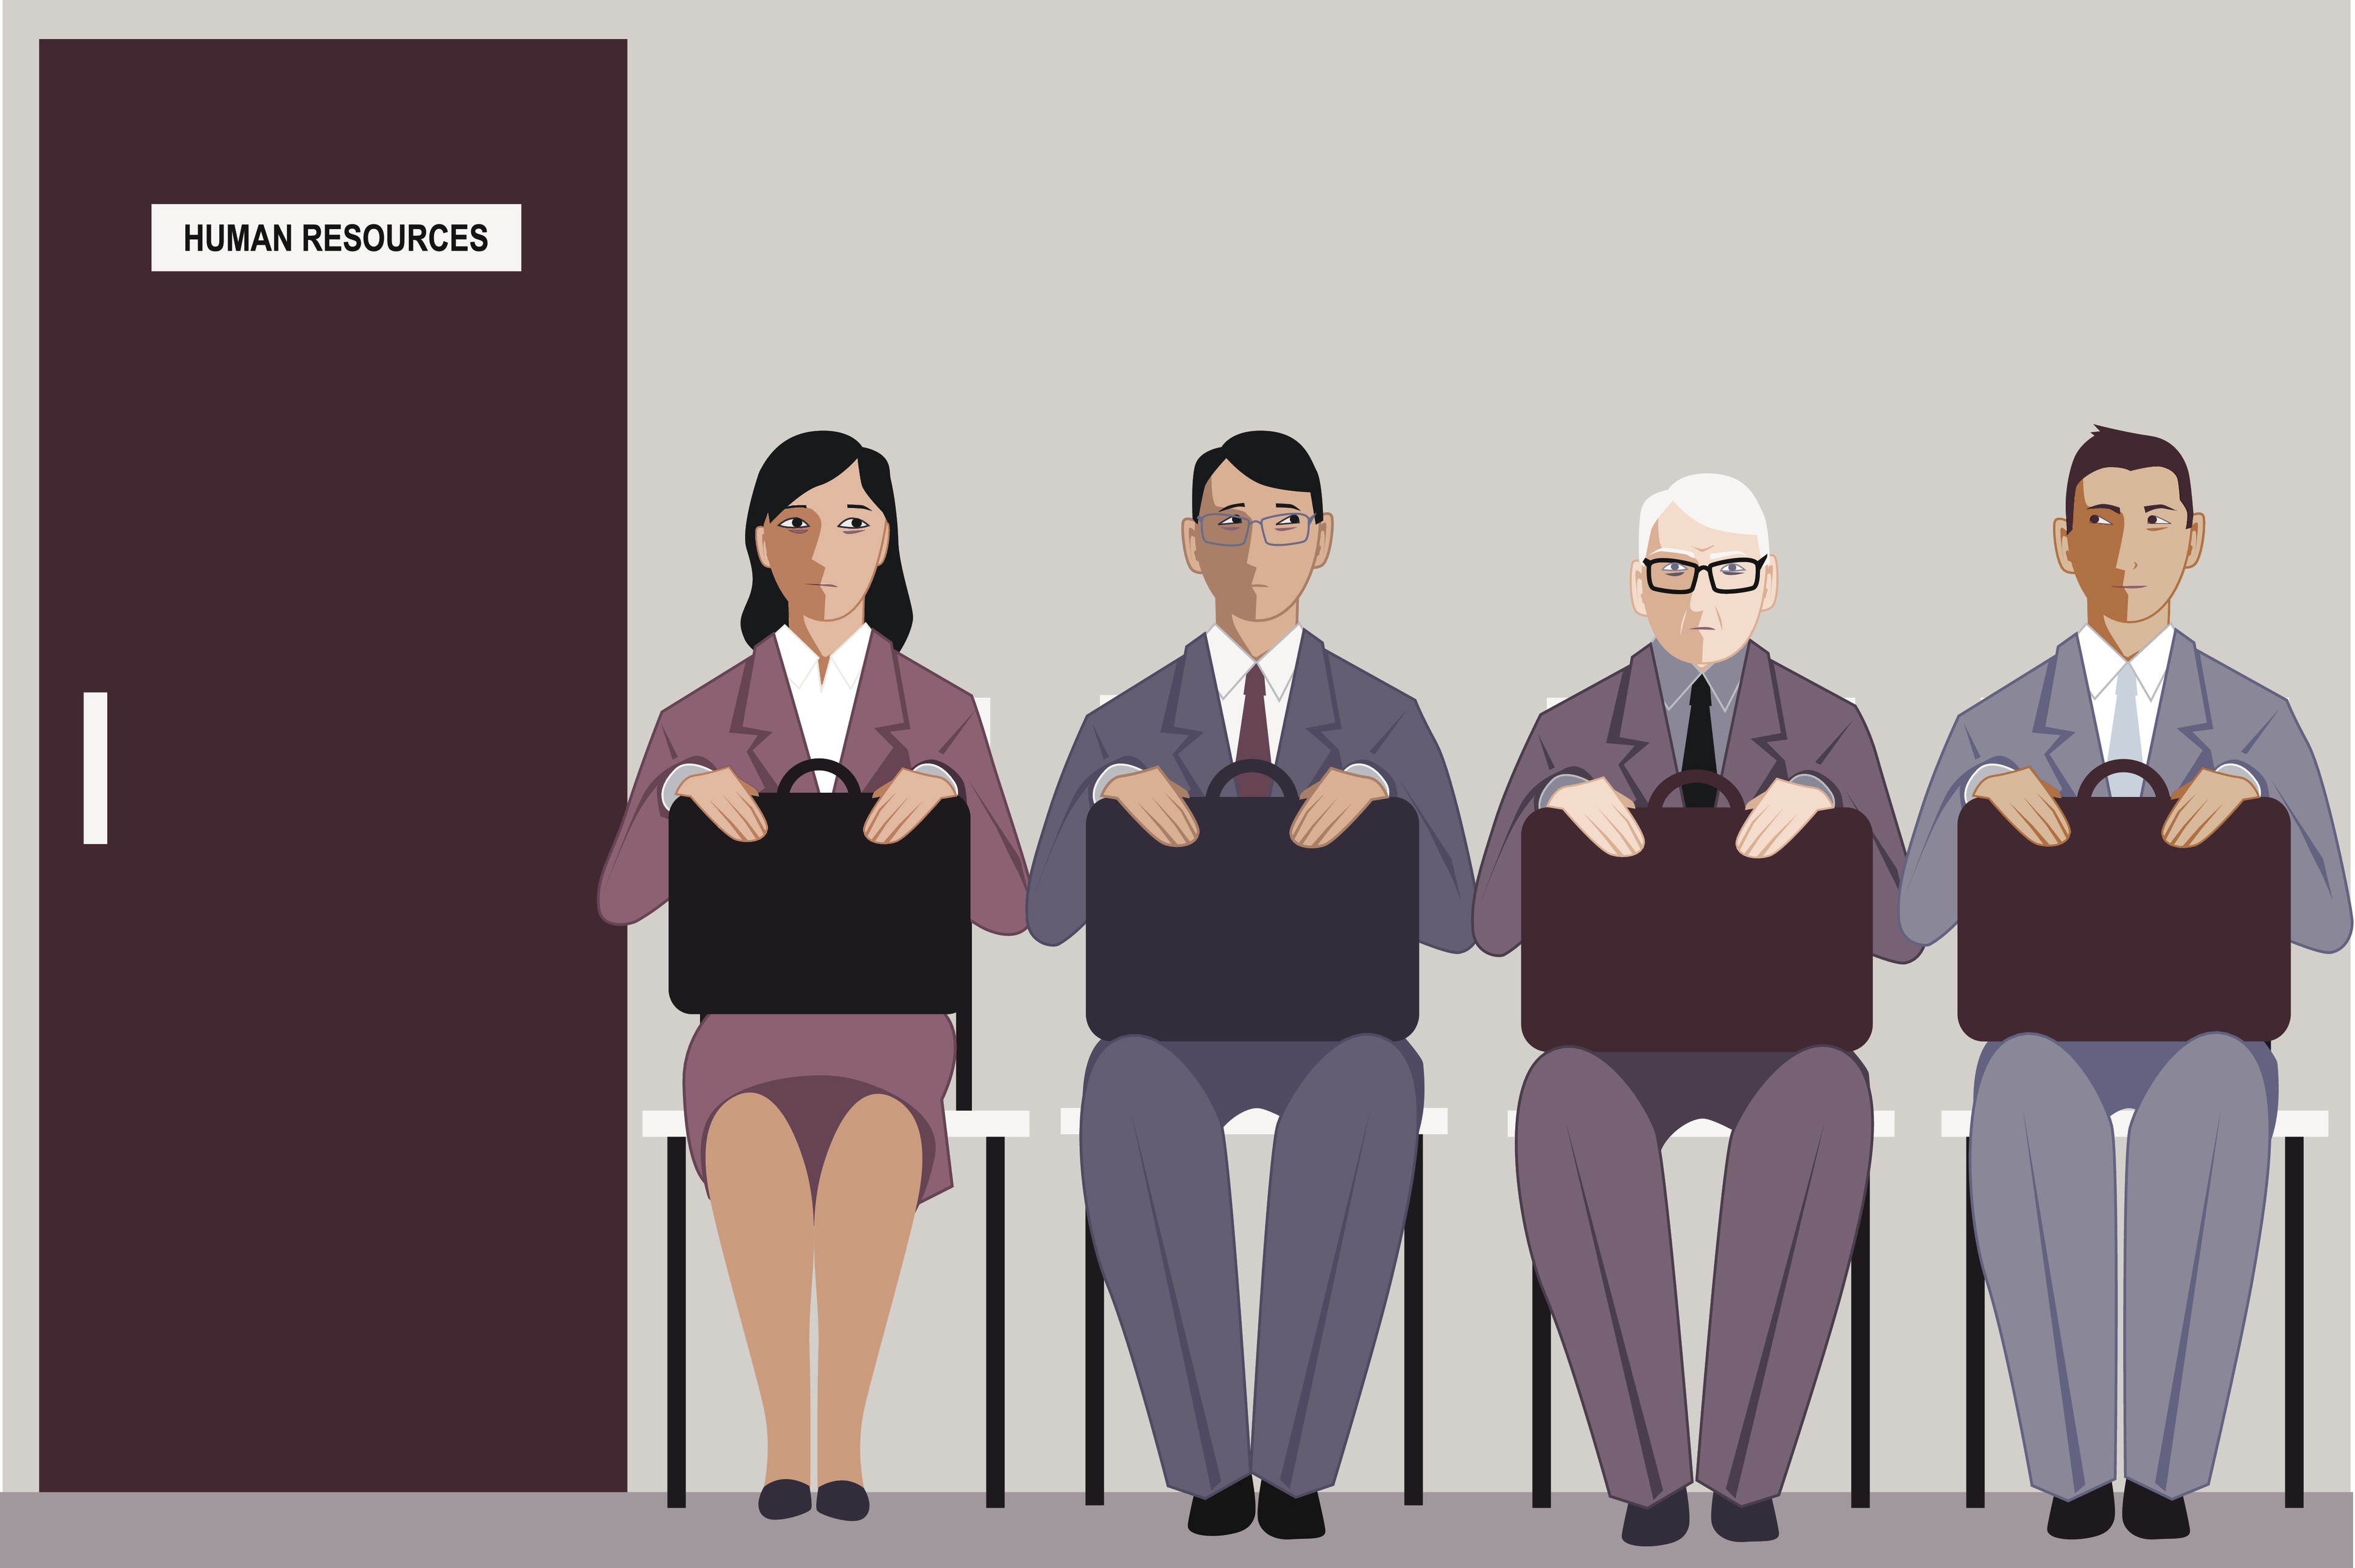 Too Much Experience To Be Hired? Some Older Americans Face Age Bias